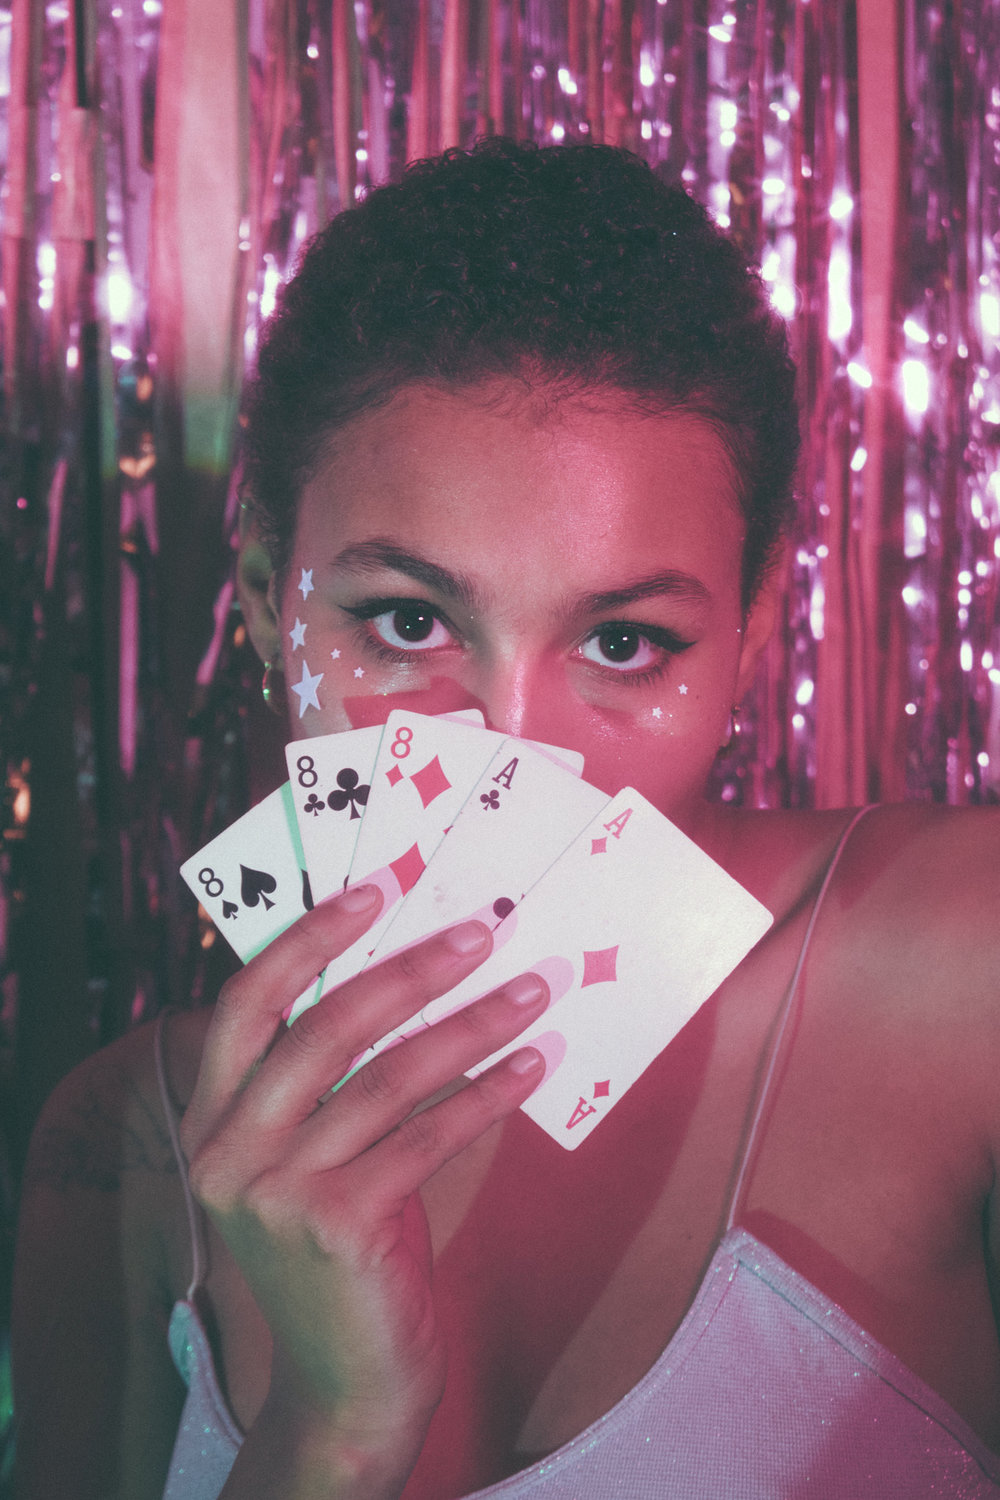 Wild Child: Prom - Wild Child is a personal project exploring unlived experiences.> view gallery